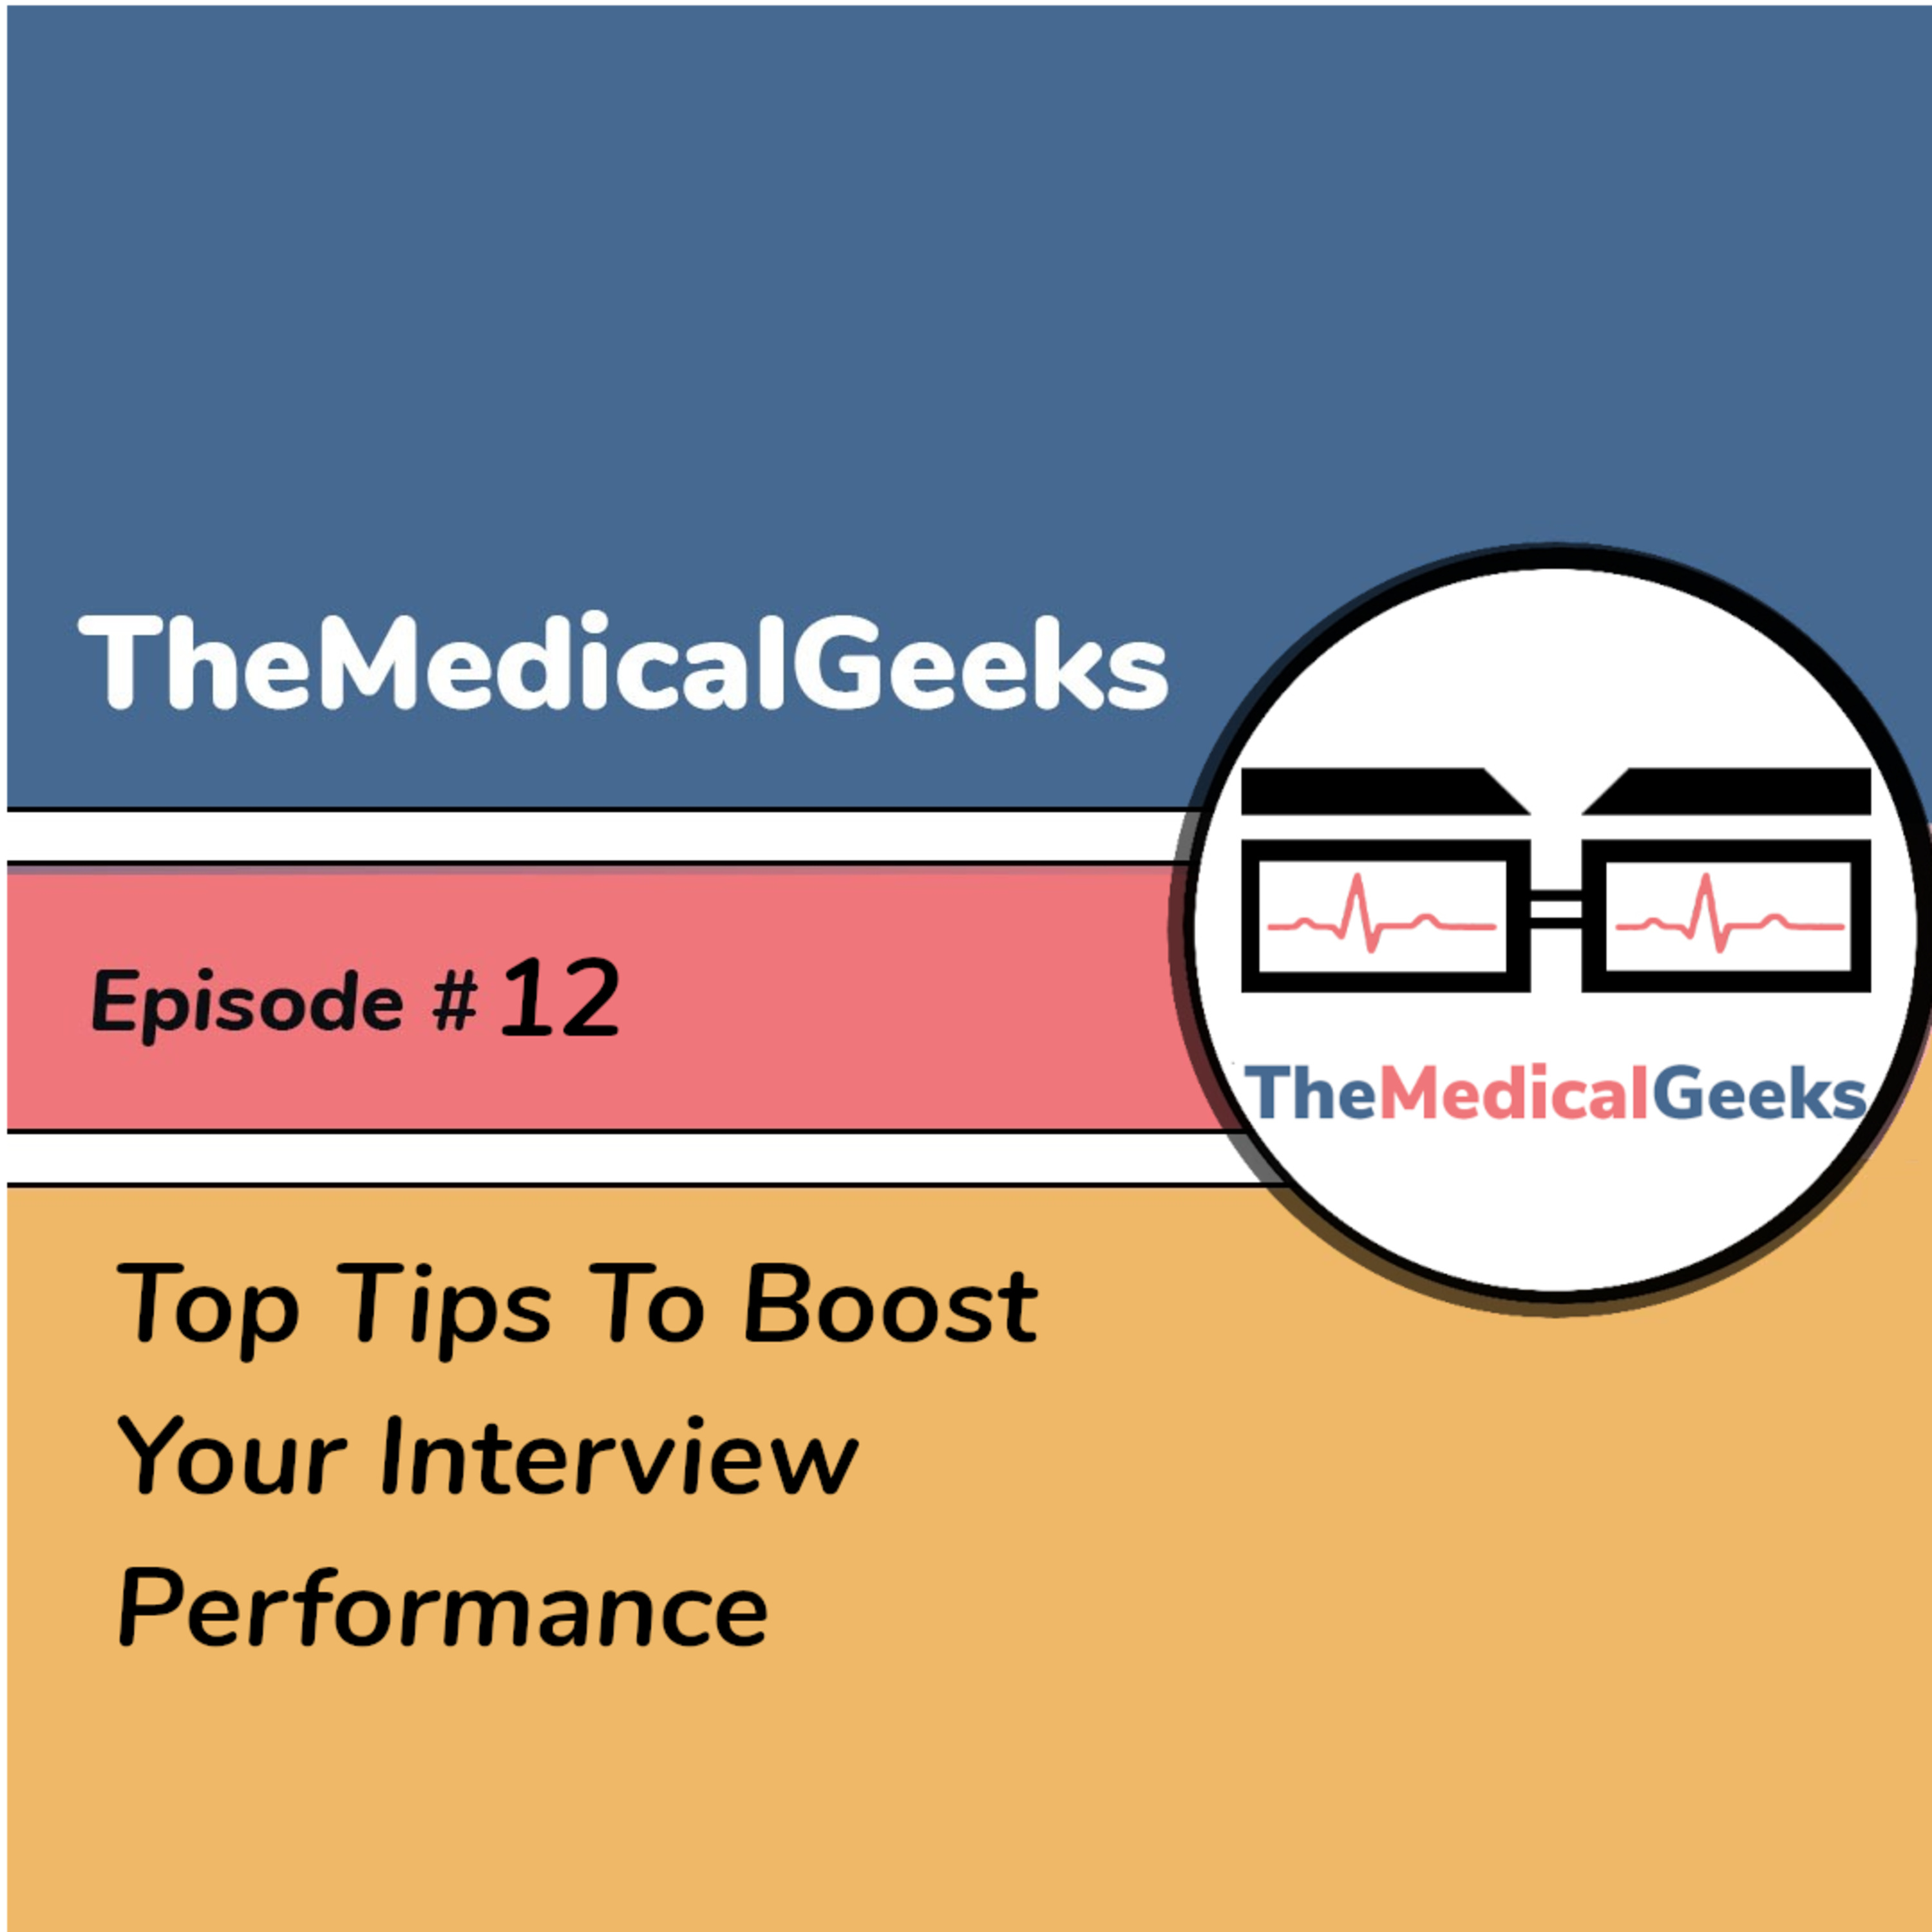 #12 Episode 12: Top Tips To Boost Your Interview Performance